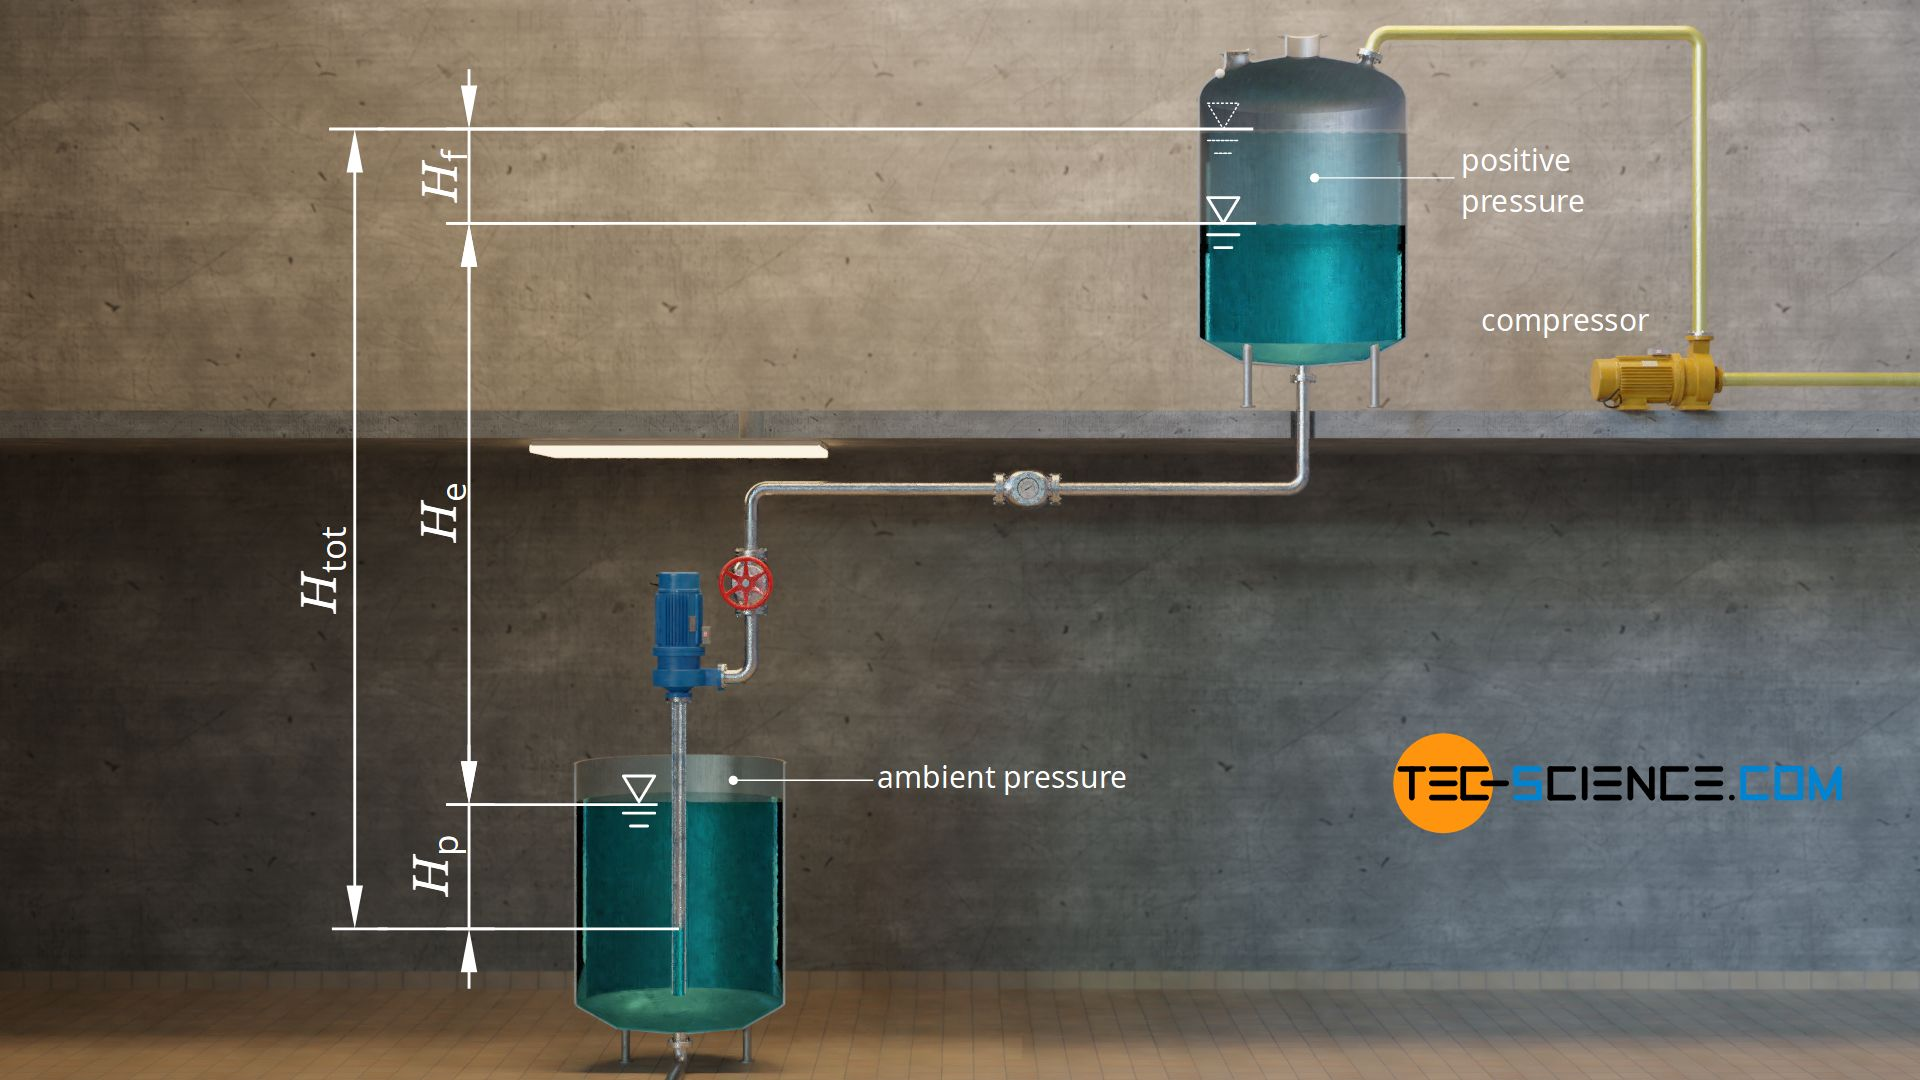 Pressure head of a piping system with positive pressure in the upper tank